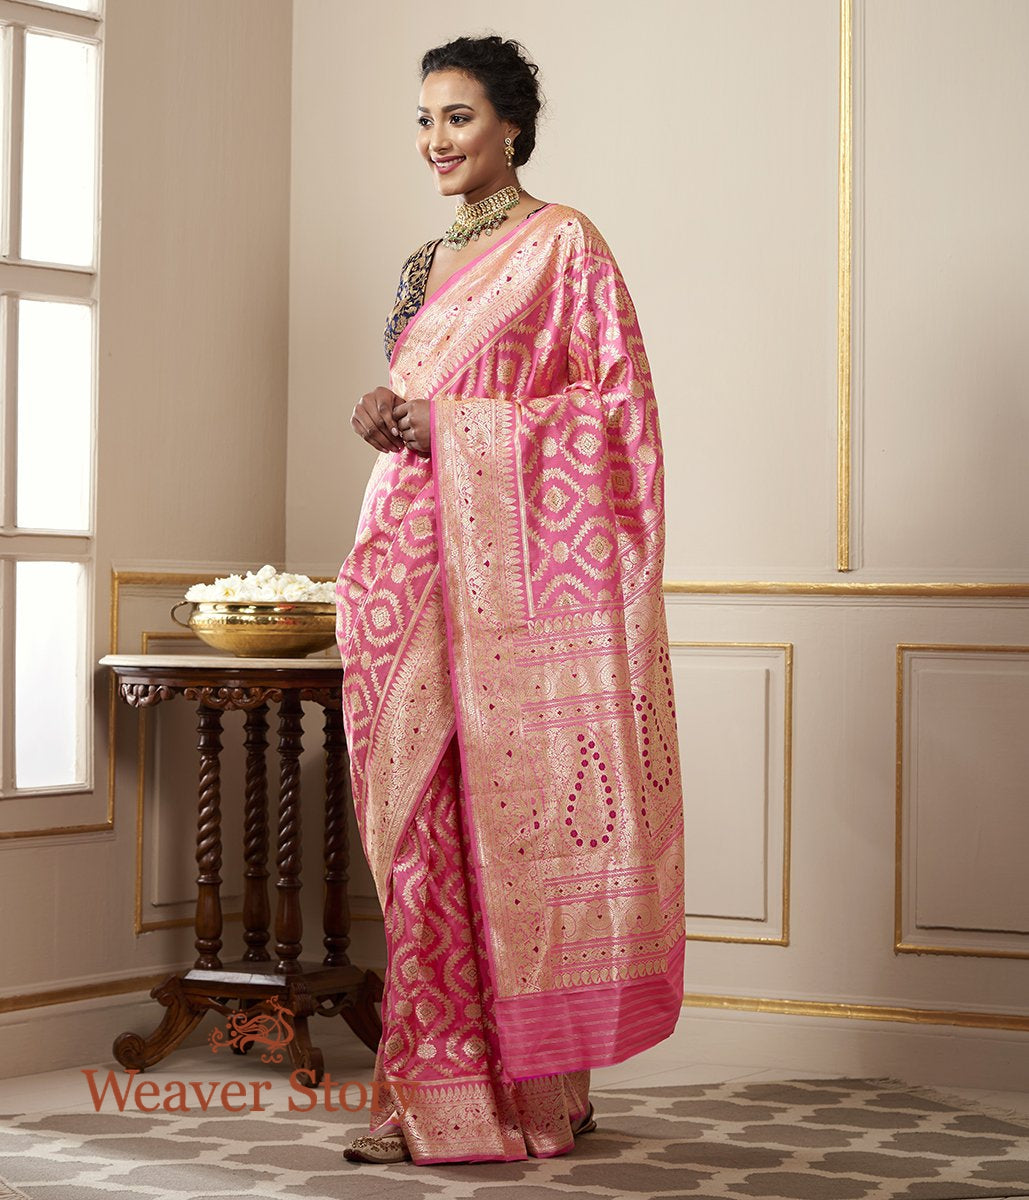 Handwoven Bubblegum Pink Katan Silk Jangla with Meenakari and Floral Border